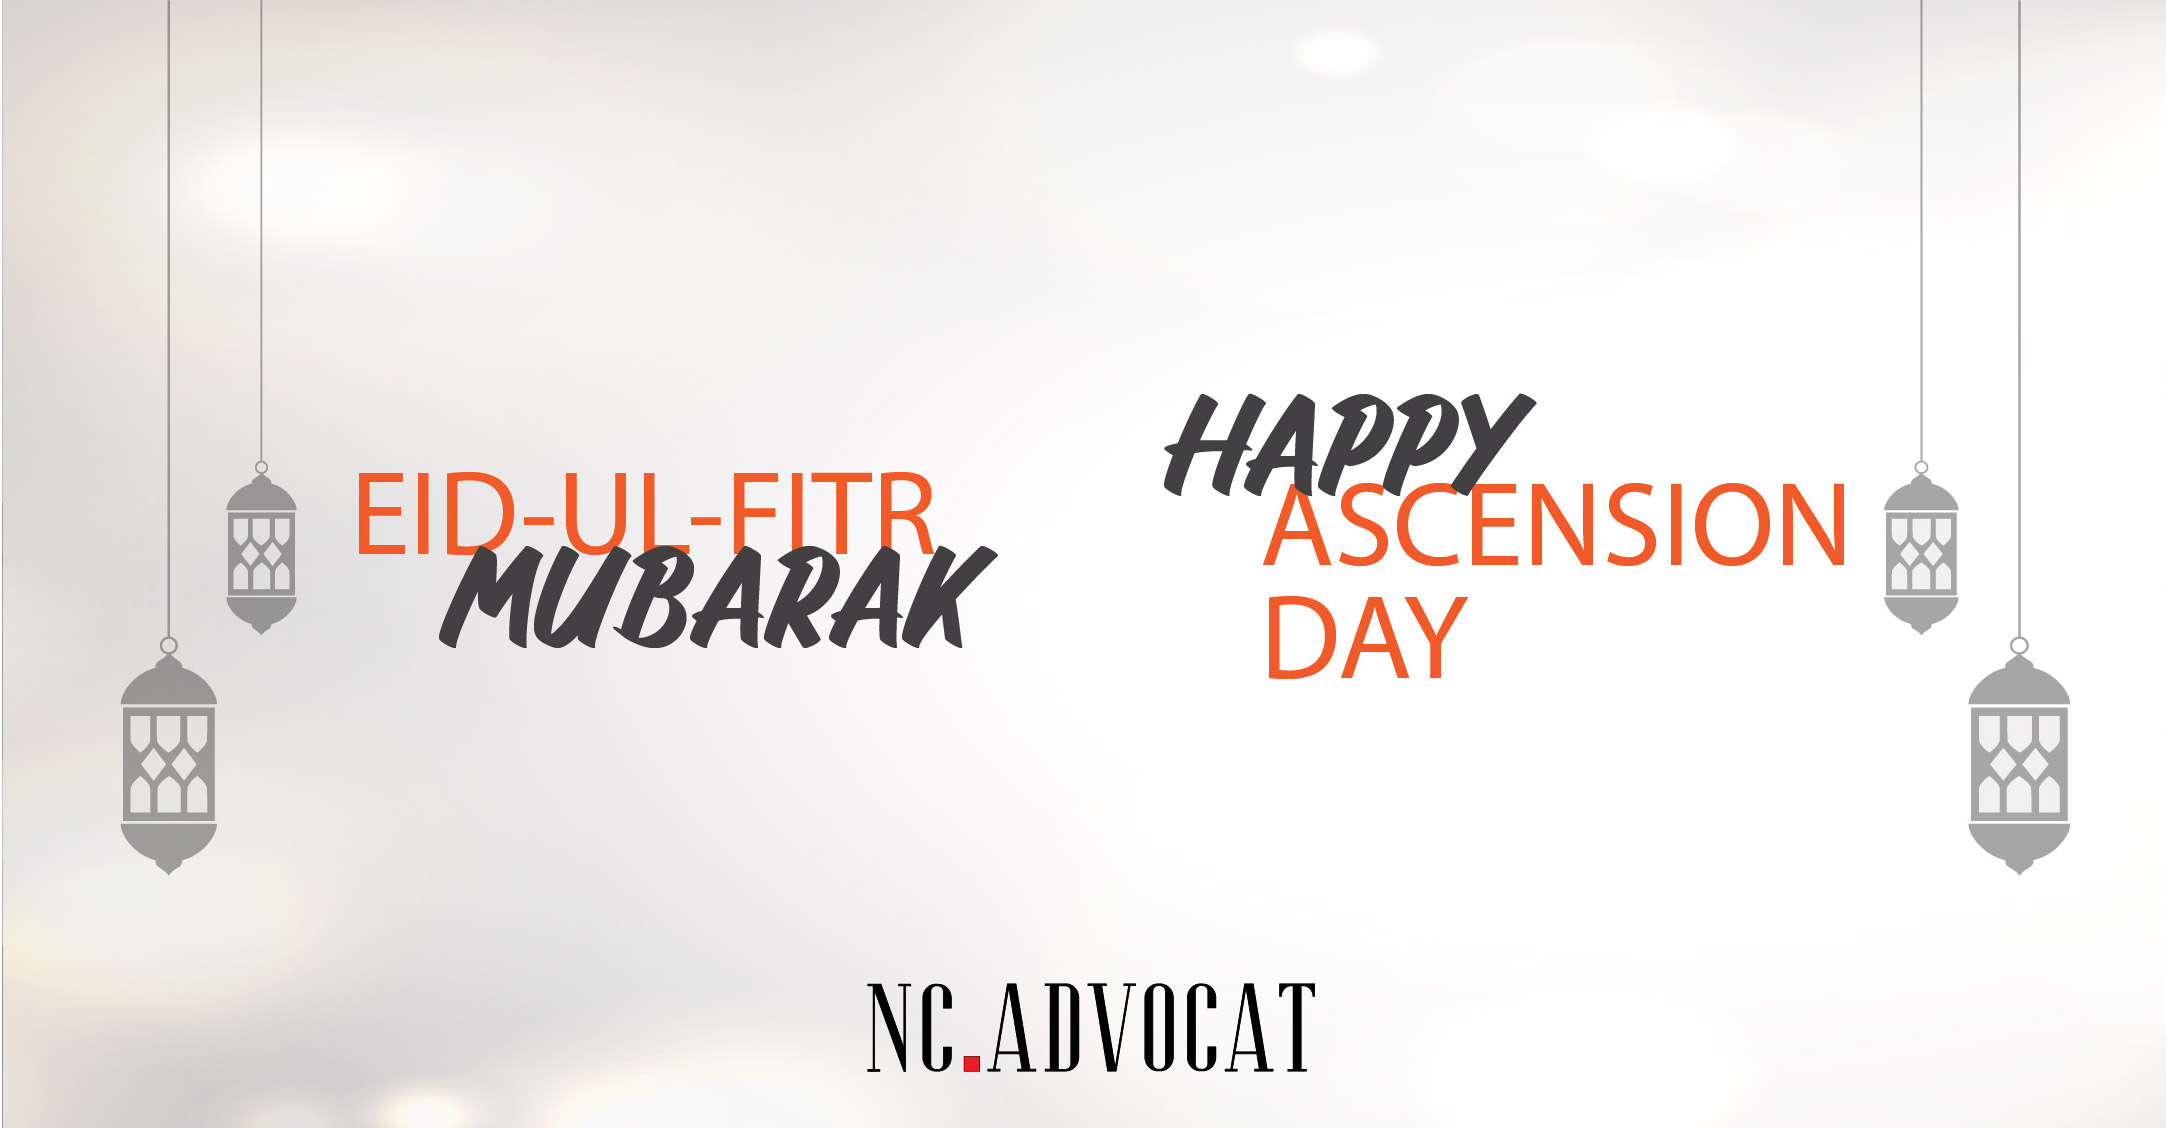 Image article - NC Advocat wish you a very happy Ascension Day and Eid-ul-Fitr mubarak !